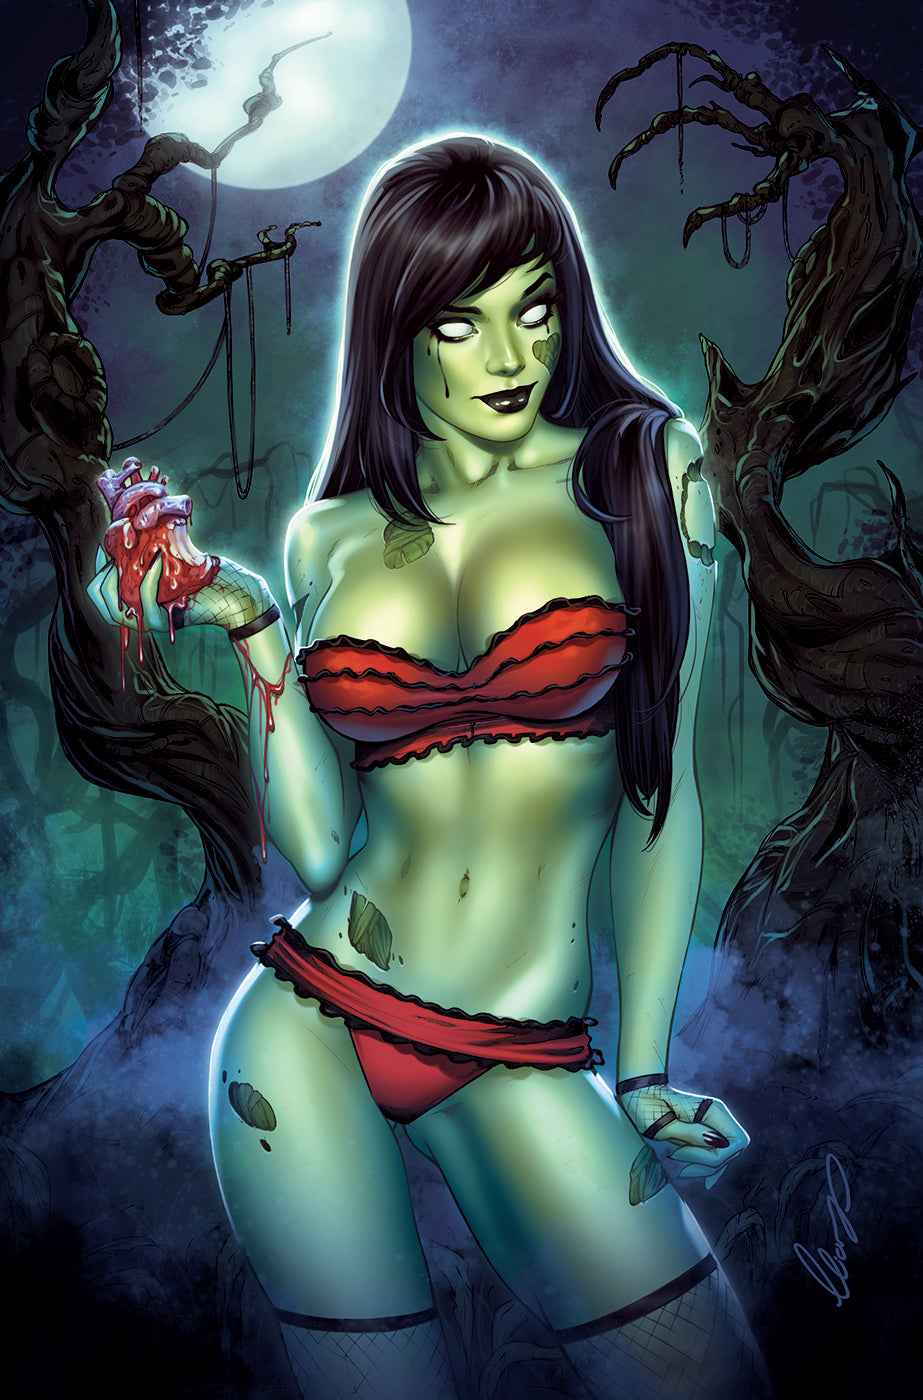 2018 ZOMBIE TRAMP #50 SSCOE EXCLUSIVE ELIAS CHATZOUDIS VIRGIN VARIANT (NOT NEAR MINT)